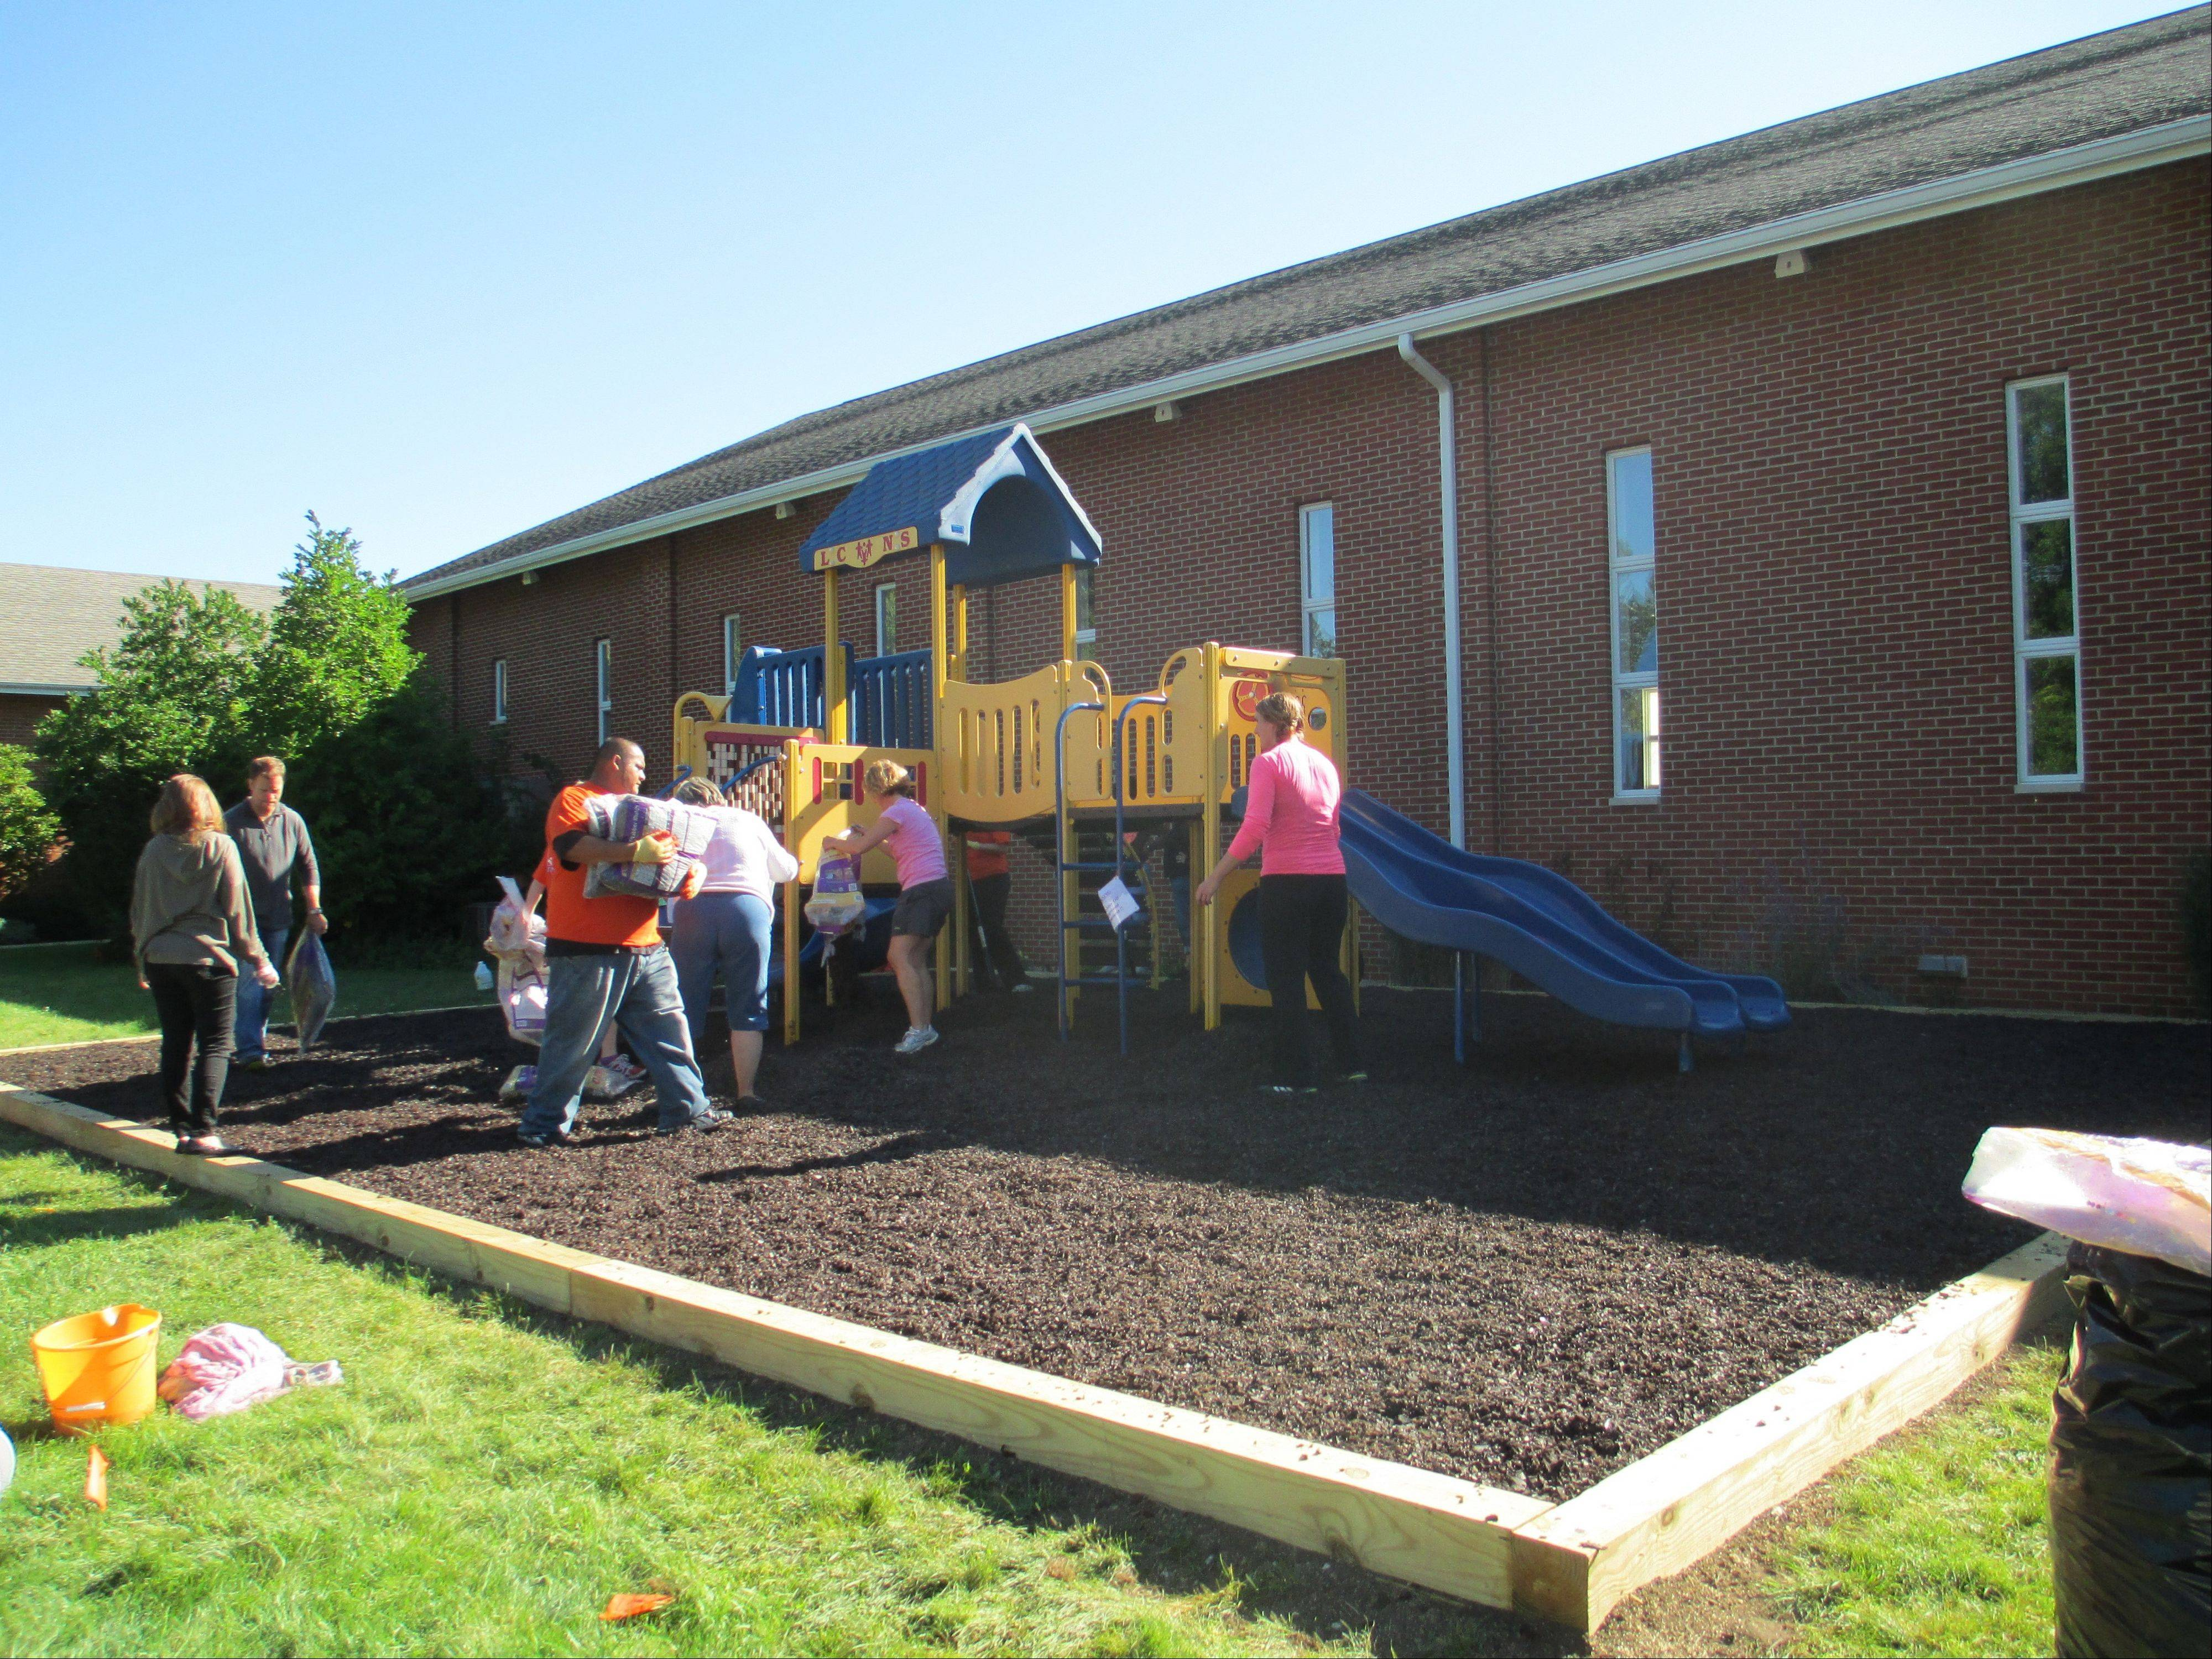 Libertyville Cooperative Nursery School's staff, board of directors and various volunteers spread rubber mulch at the preschool's new playground at Trinity Community Church in Libertyville.